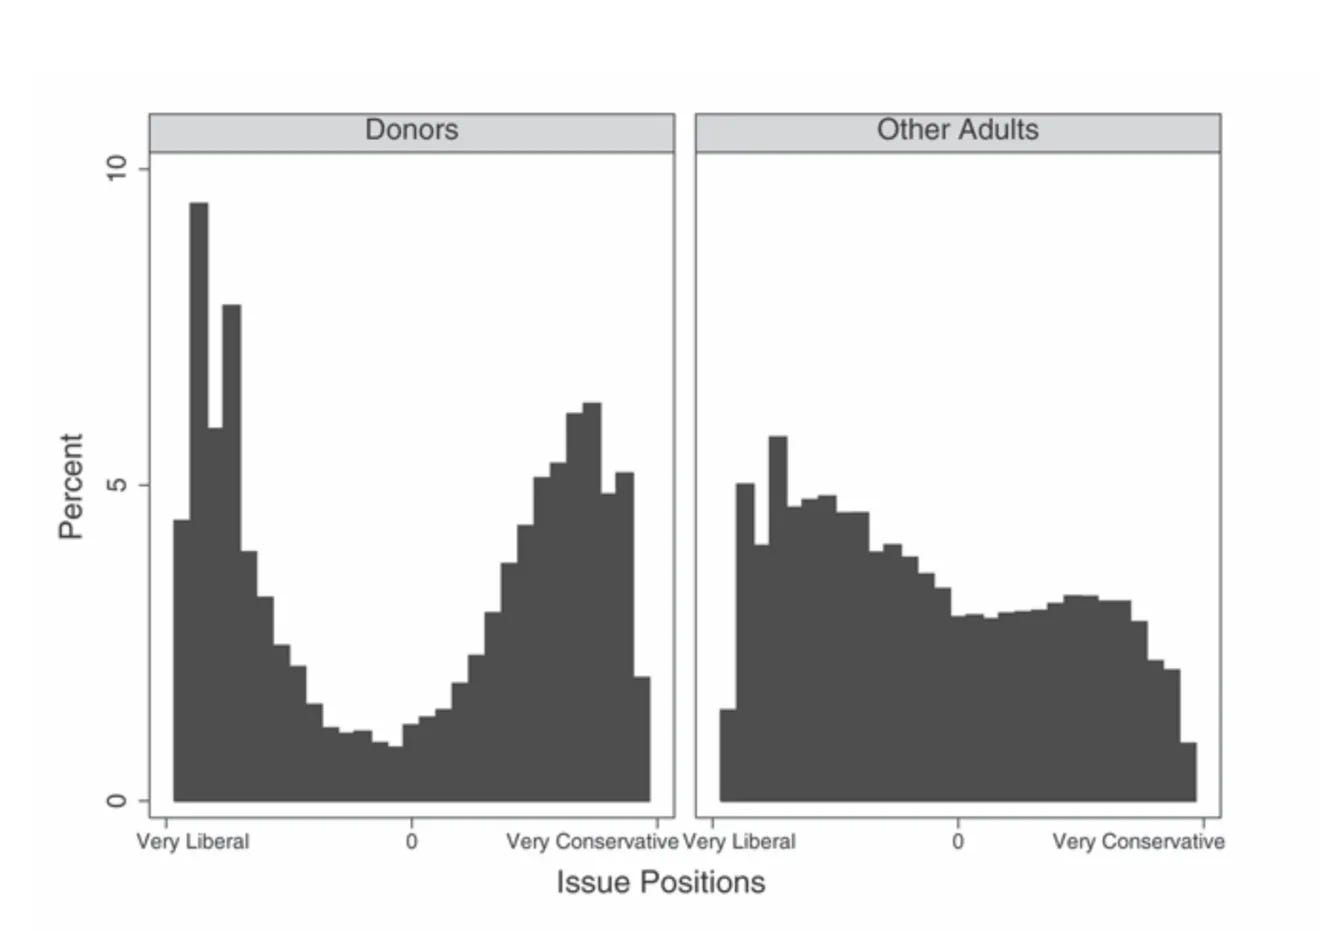 Graphs showing polarization of politics between political donors and non donors